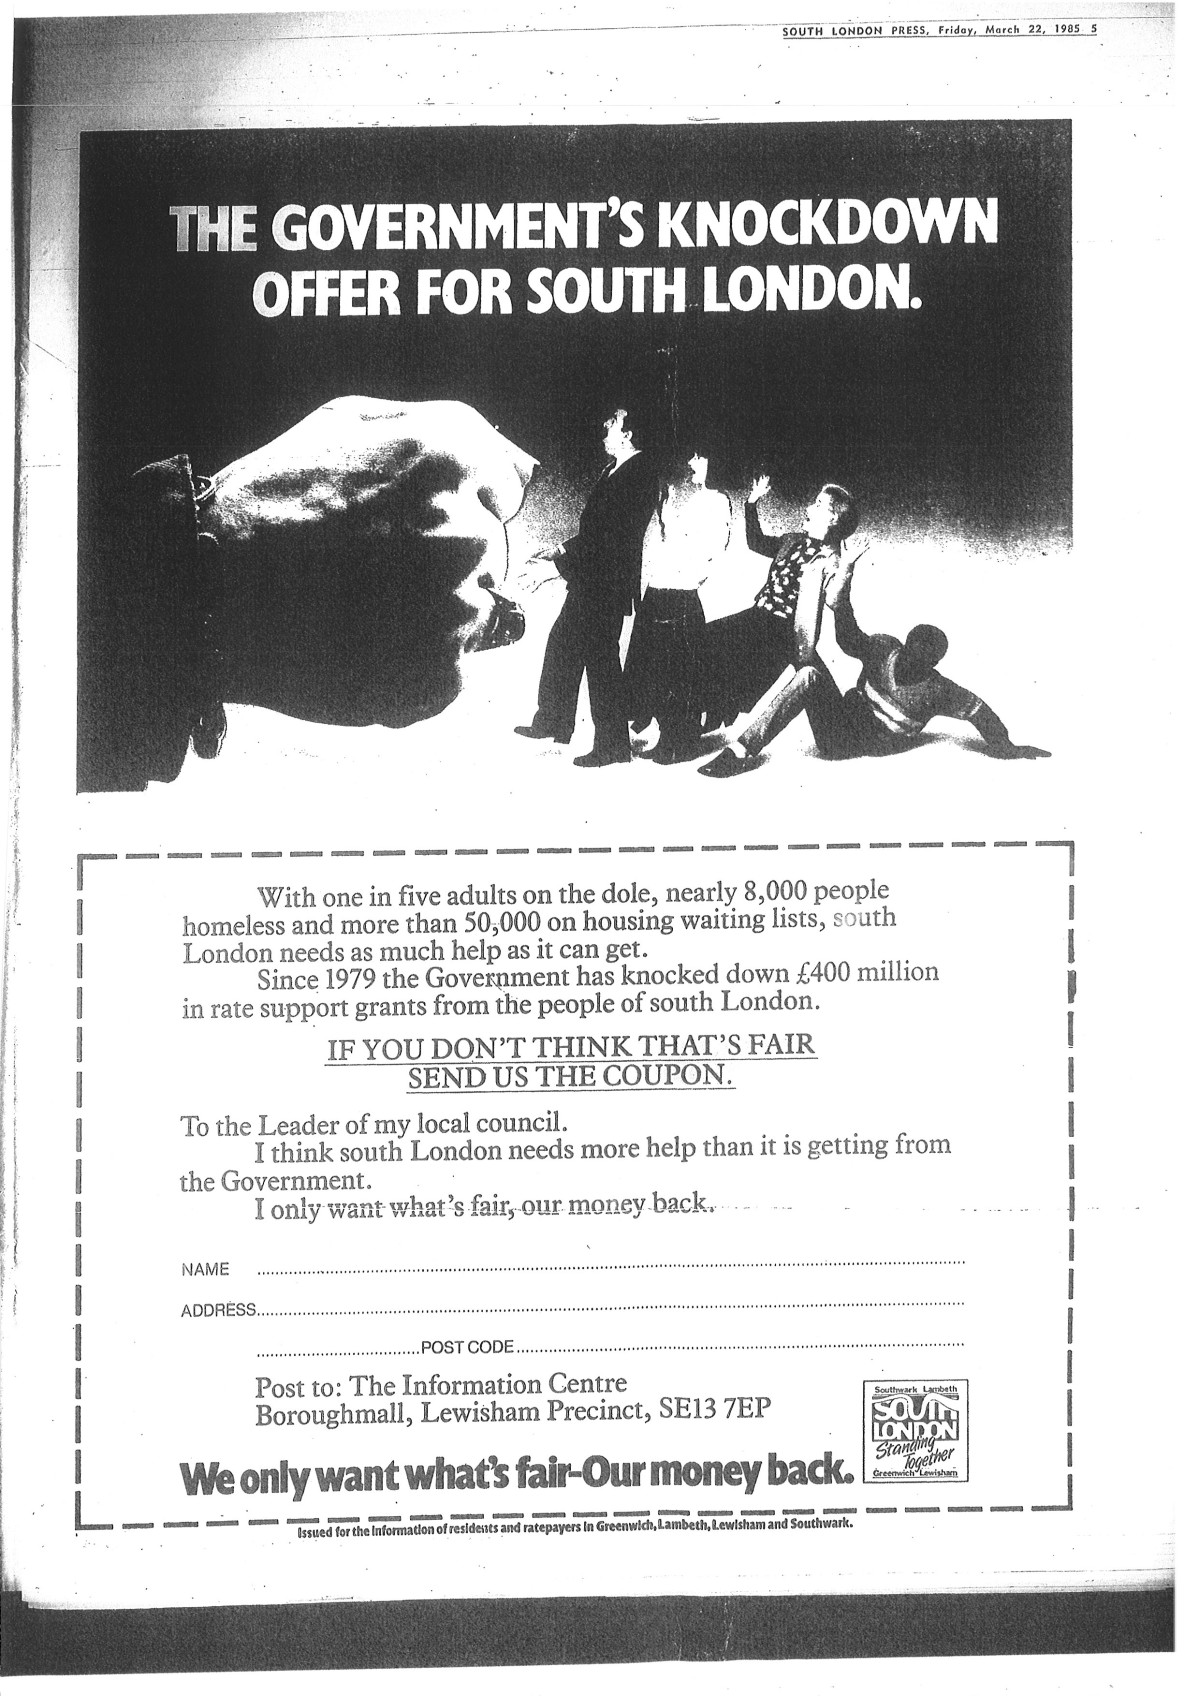 """Government's knock down offer for South London"", showing a fist punching over a group of people"